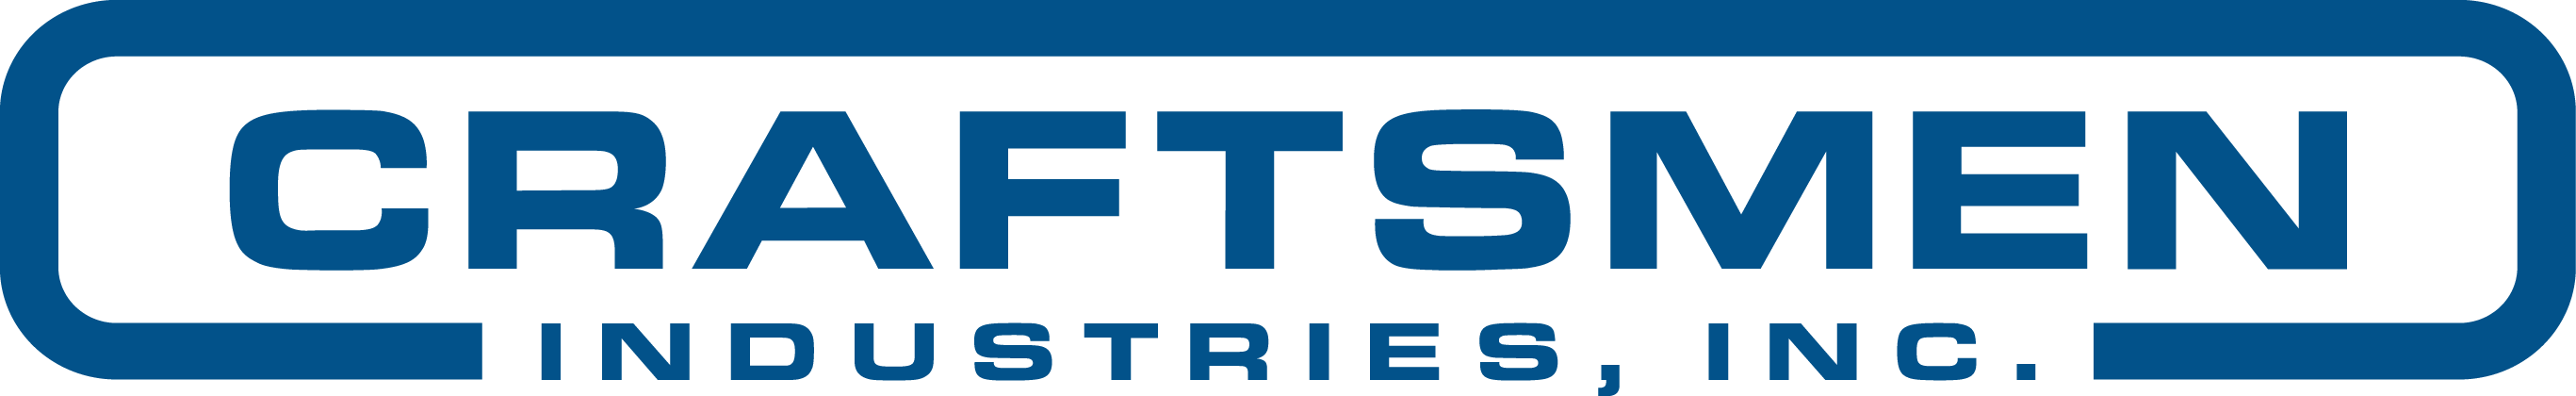 Craftsmen Industries, Inc. Logo